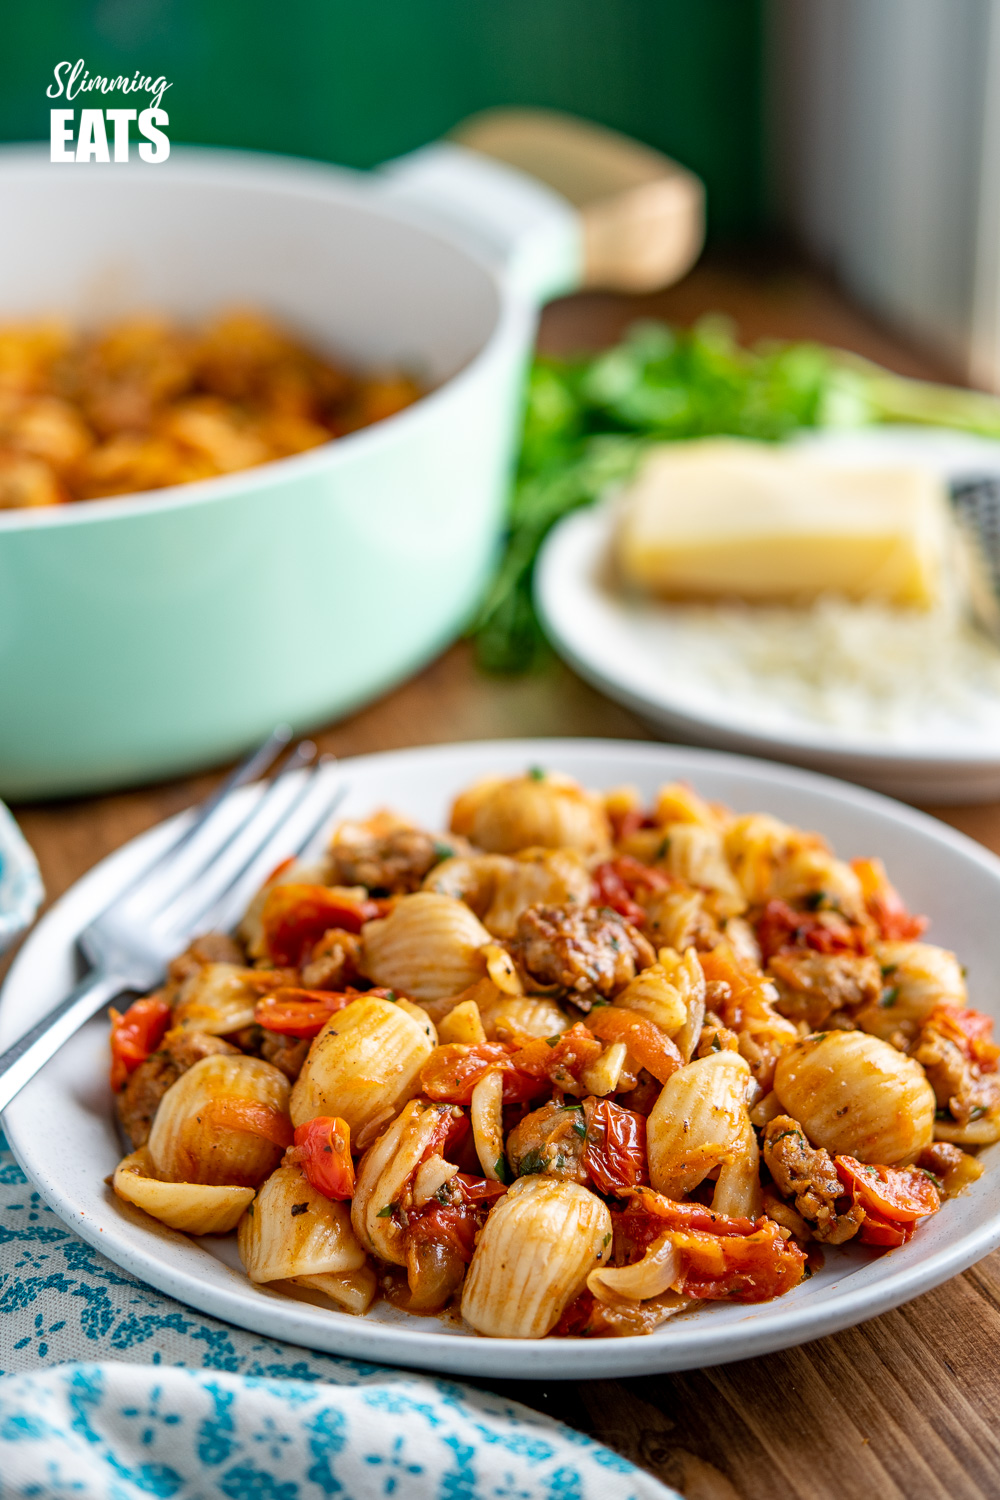 Sausage, Balsamic Tomatoes and Onion with Orecchiette on white plate with fork